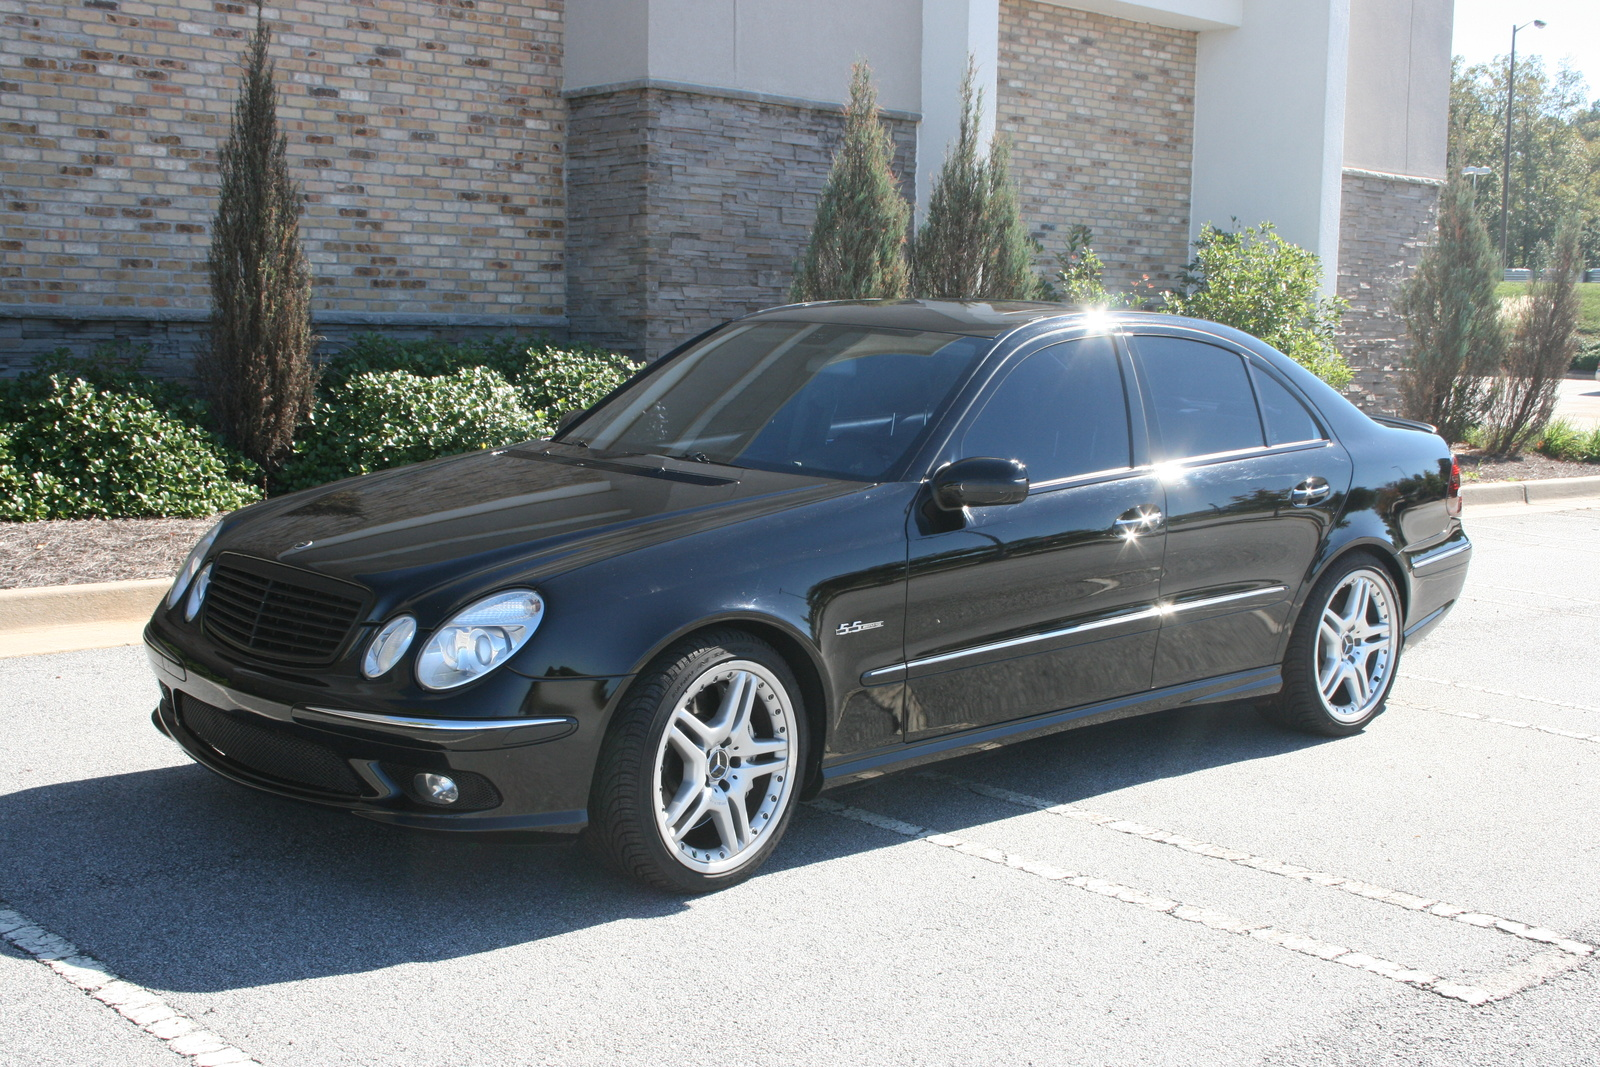 Mercedes-Benz E-Class Questions - When I put in my tag#, this site ...